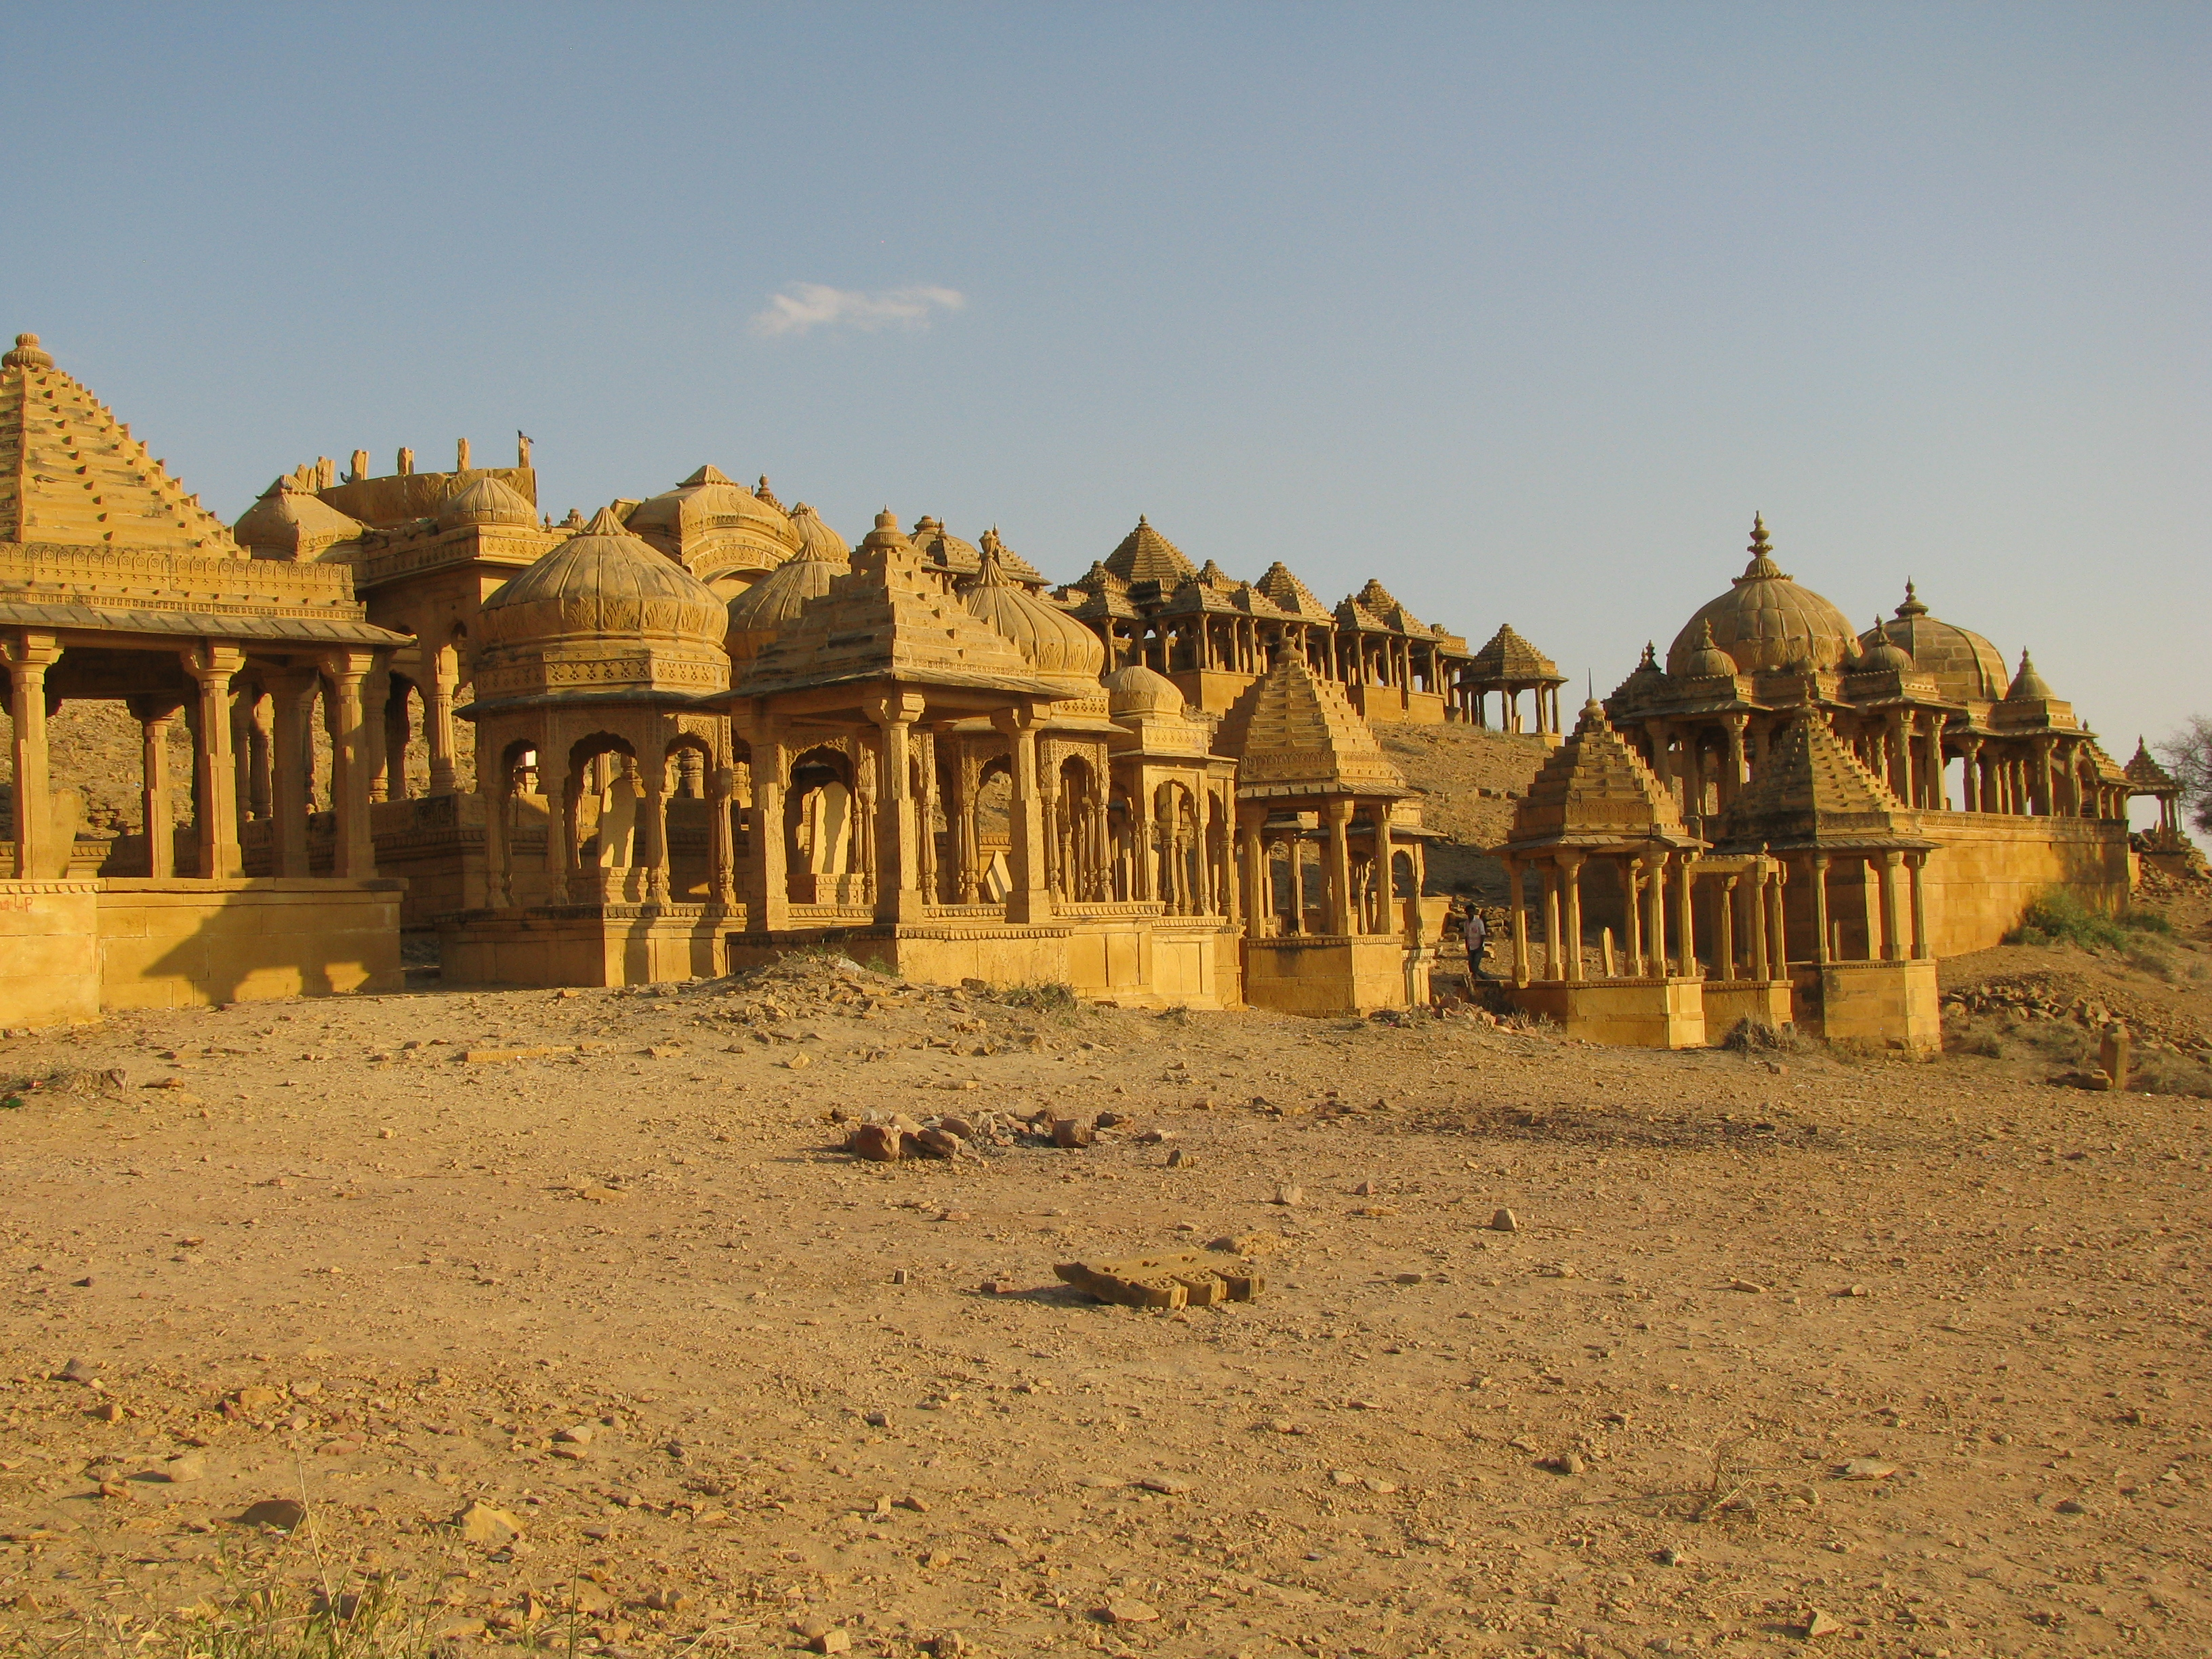 Bada Bagh Tombs